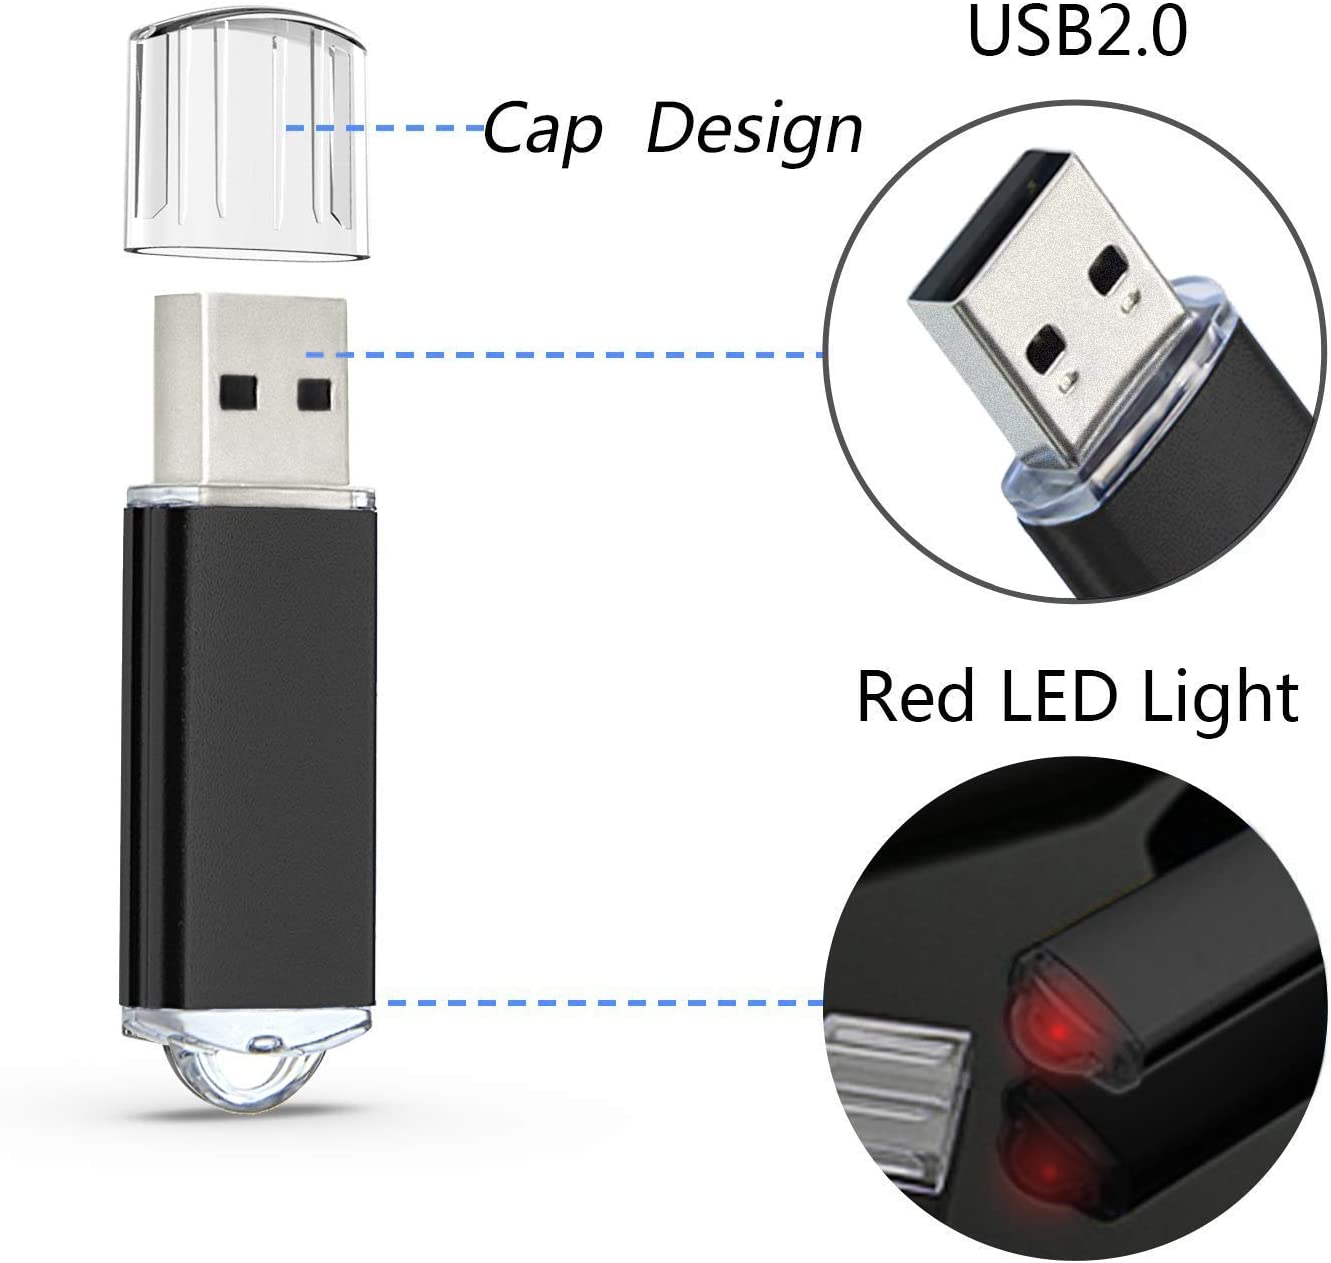 Black Thumb Drive Gift by Datarm USB 2.0 Flash Drive for Storing Small File Portable Personalized Logo Pen Drive Zip Drive 256MB Memory Stick Pack of 100 Mini Metal Pendrives